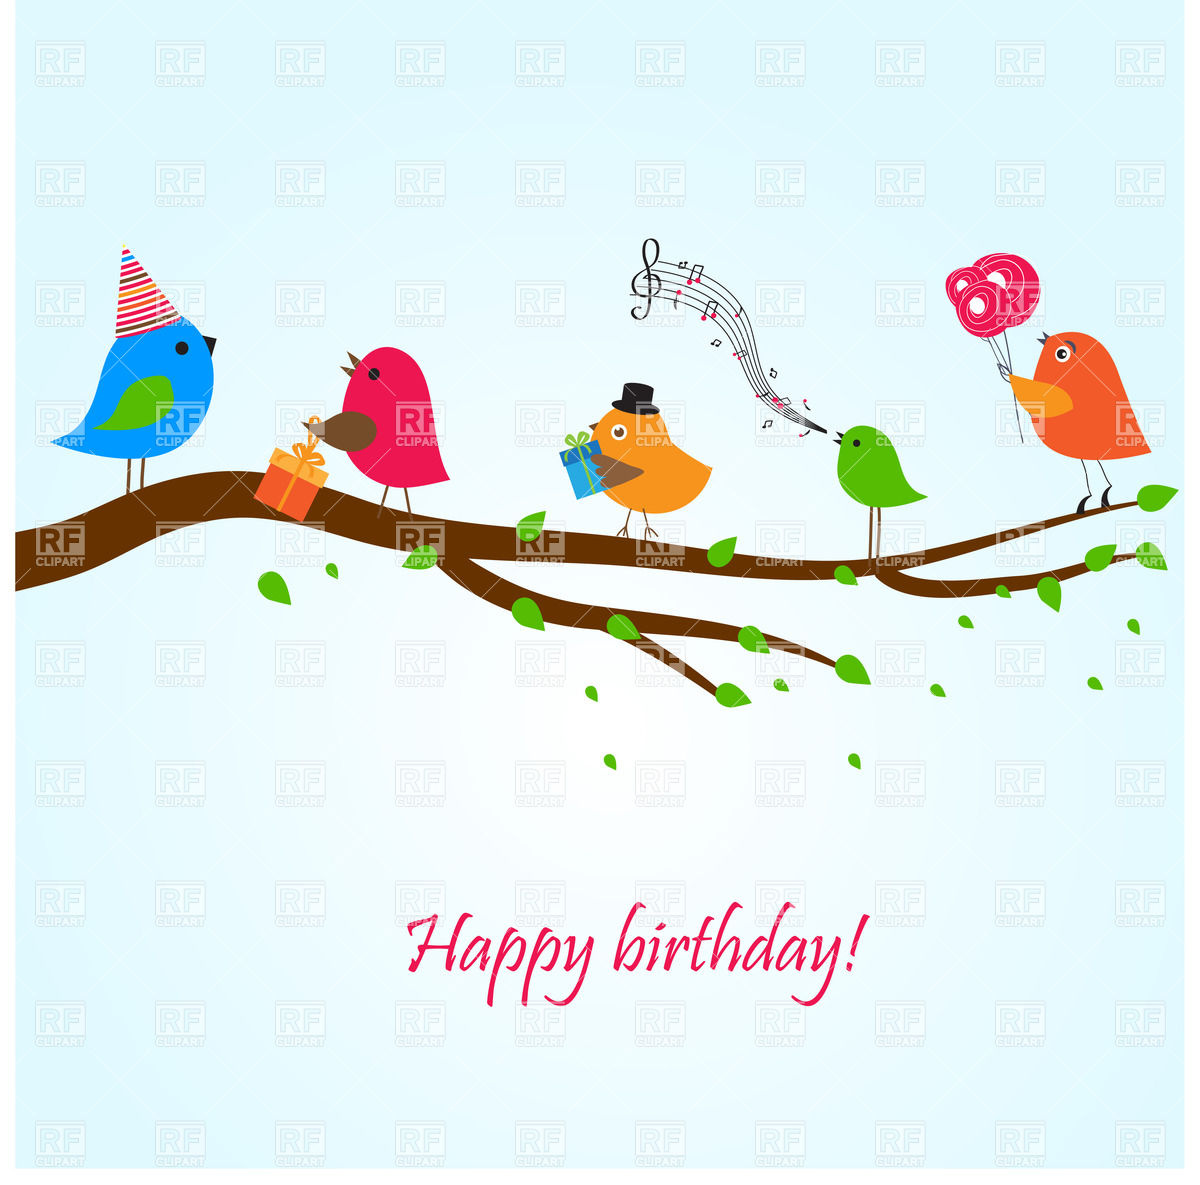 1200x1185 Birthday Greeting Card With Birds On The Branch Singing Songs